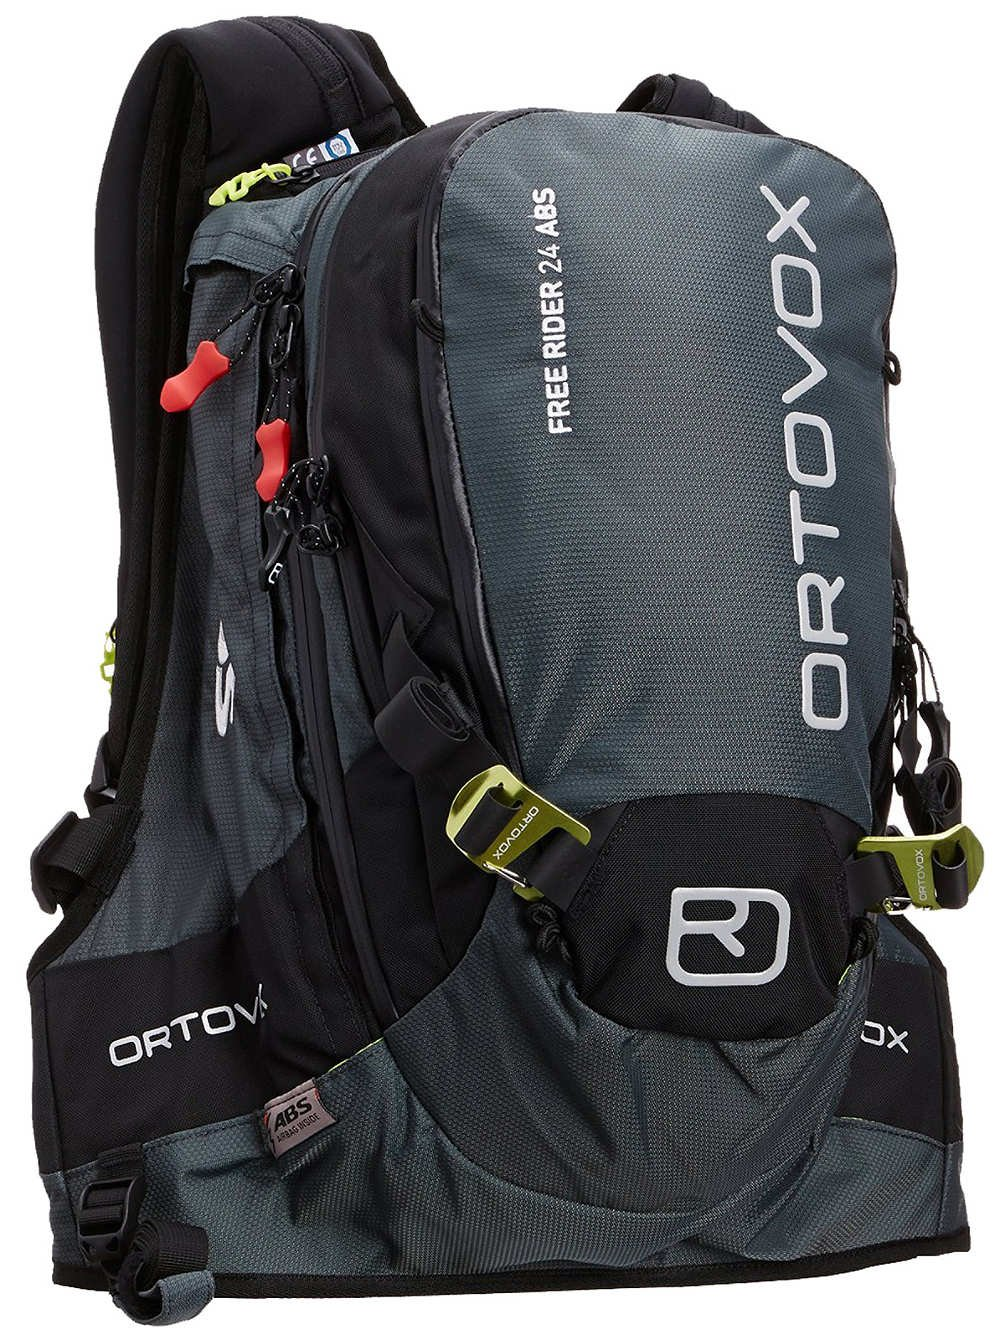 Ortovox Mens Avalanche Rider 24 ABS Backpack バックパック 【並行輸入】   B00F5JI1PC